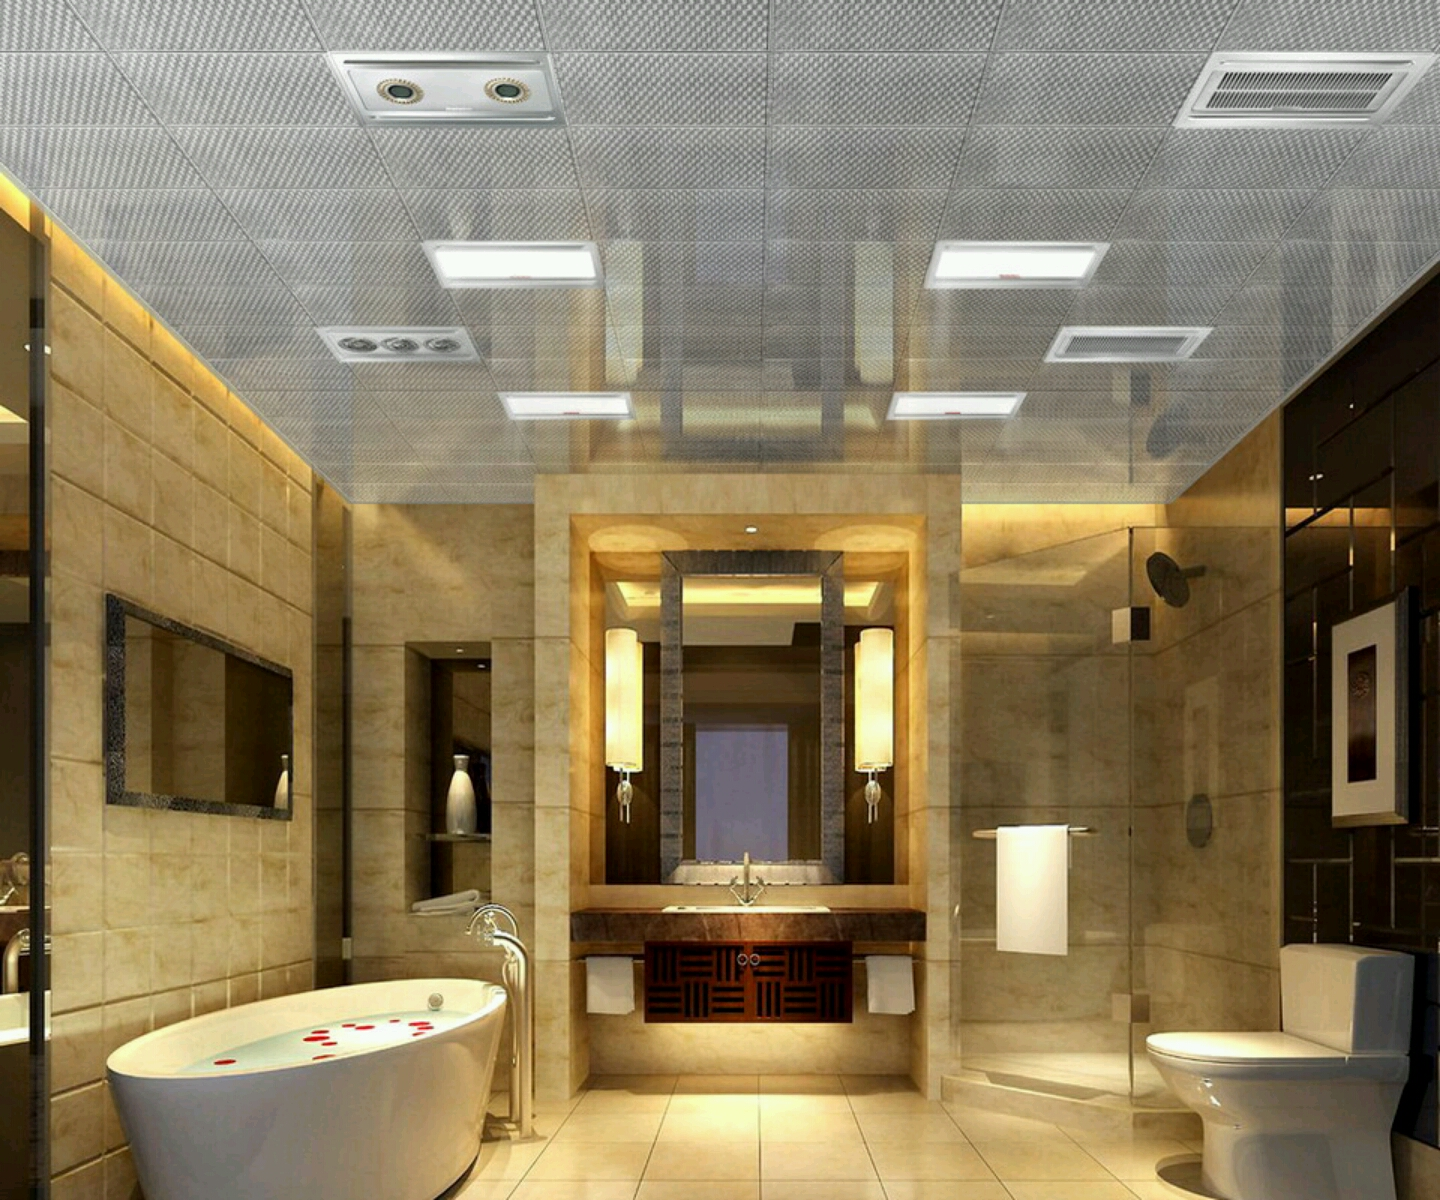 New home designs latest luxury bathrooms designs ideas for Home remodeling ideas bathroom